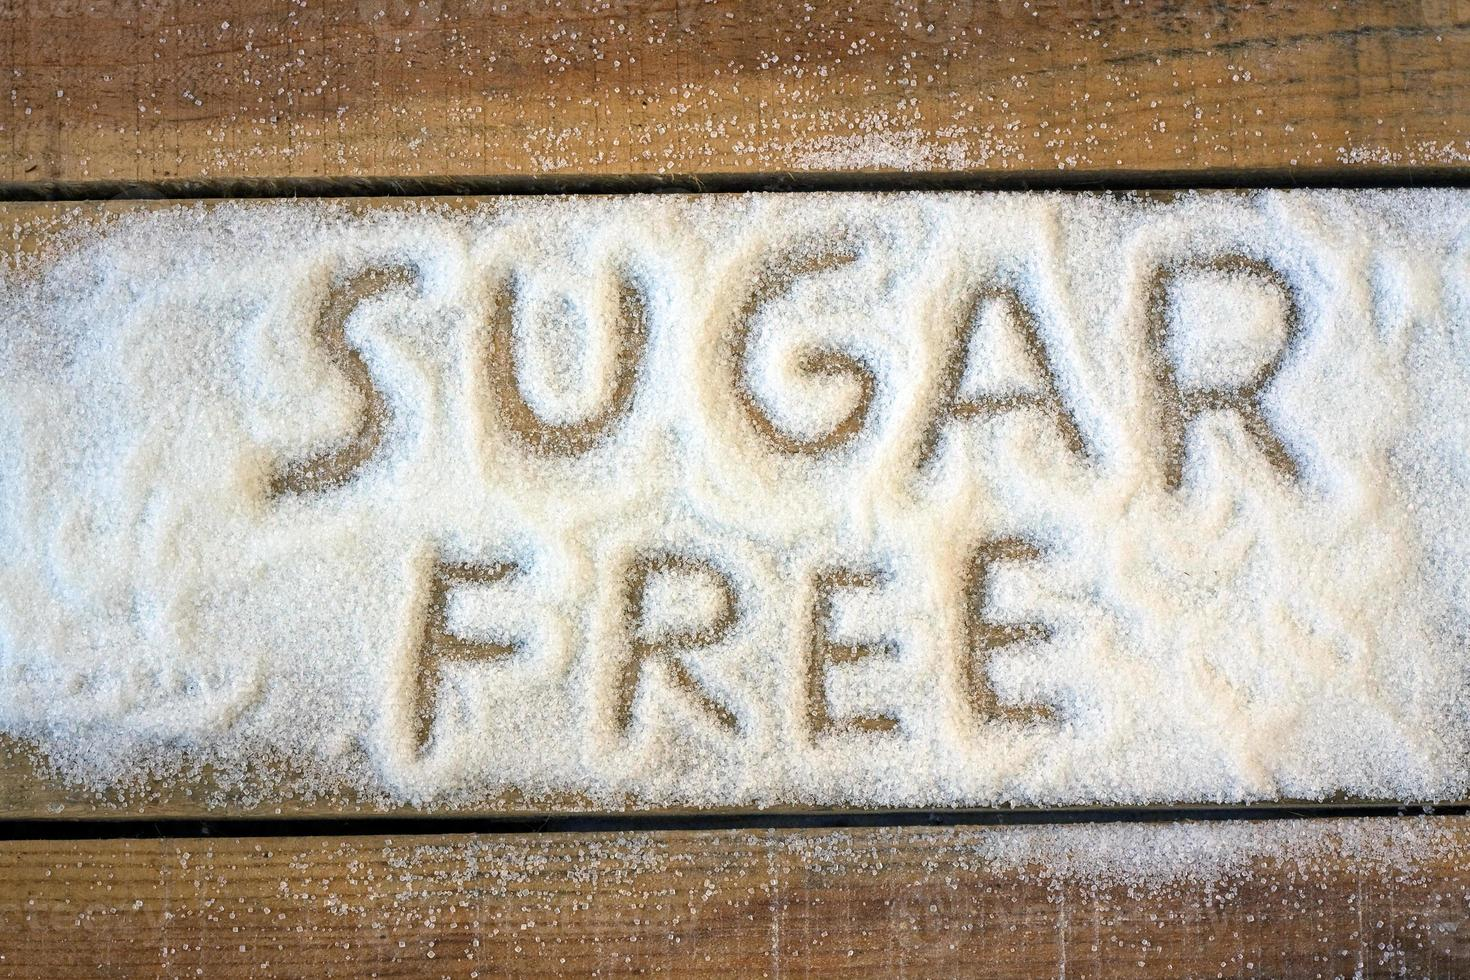 Sugar free written on white sugar on a wooden surface photo